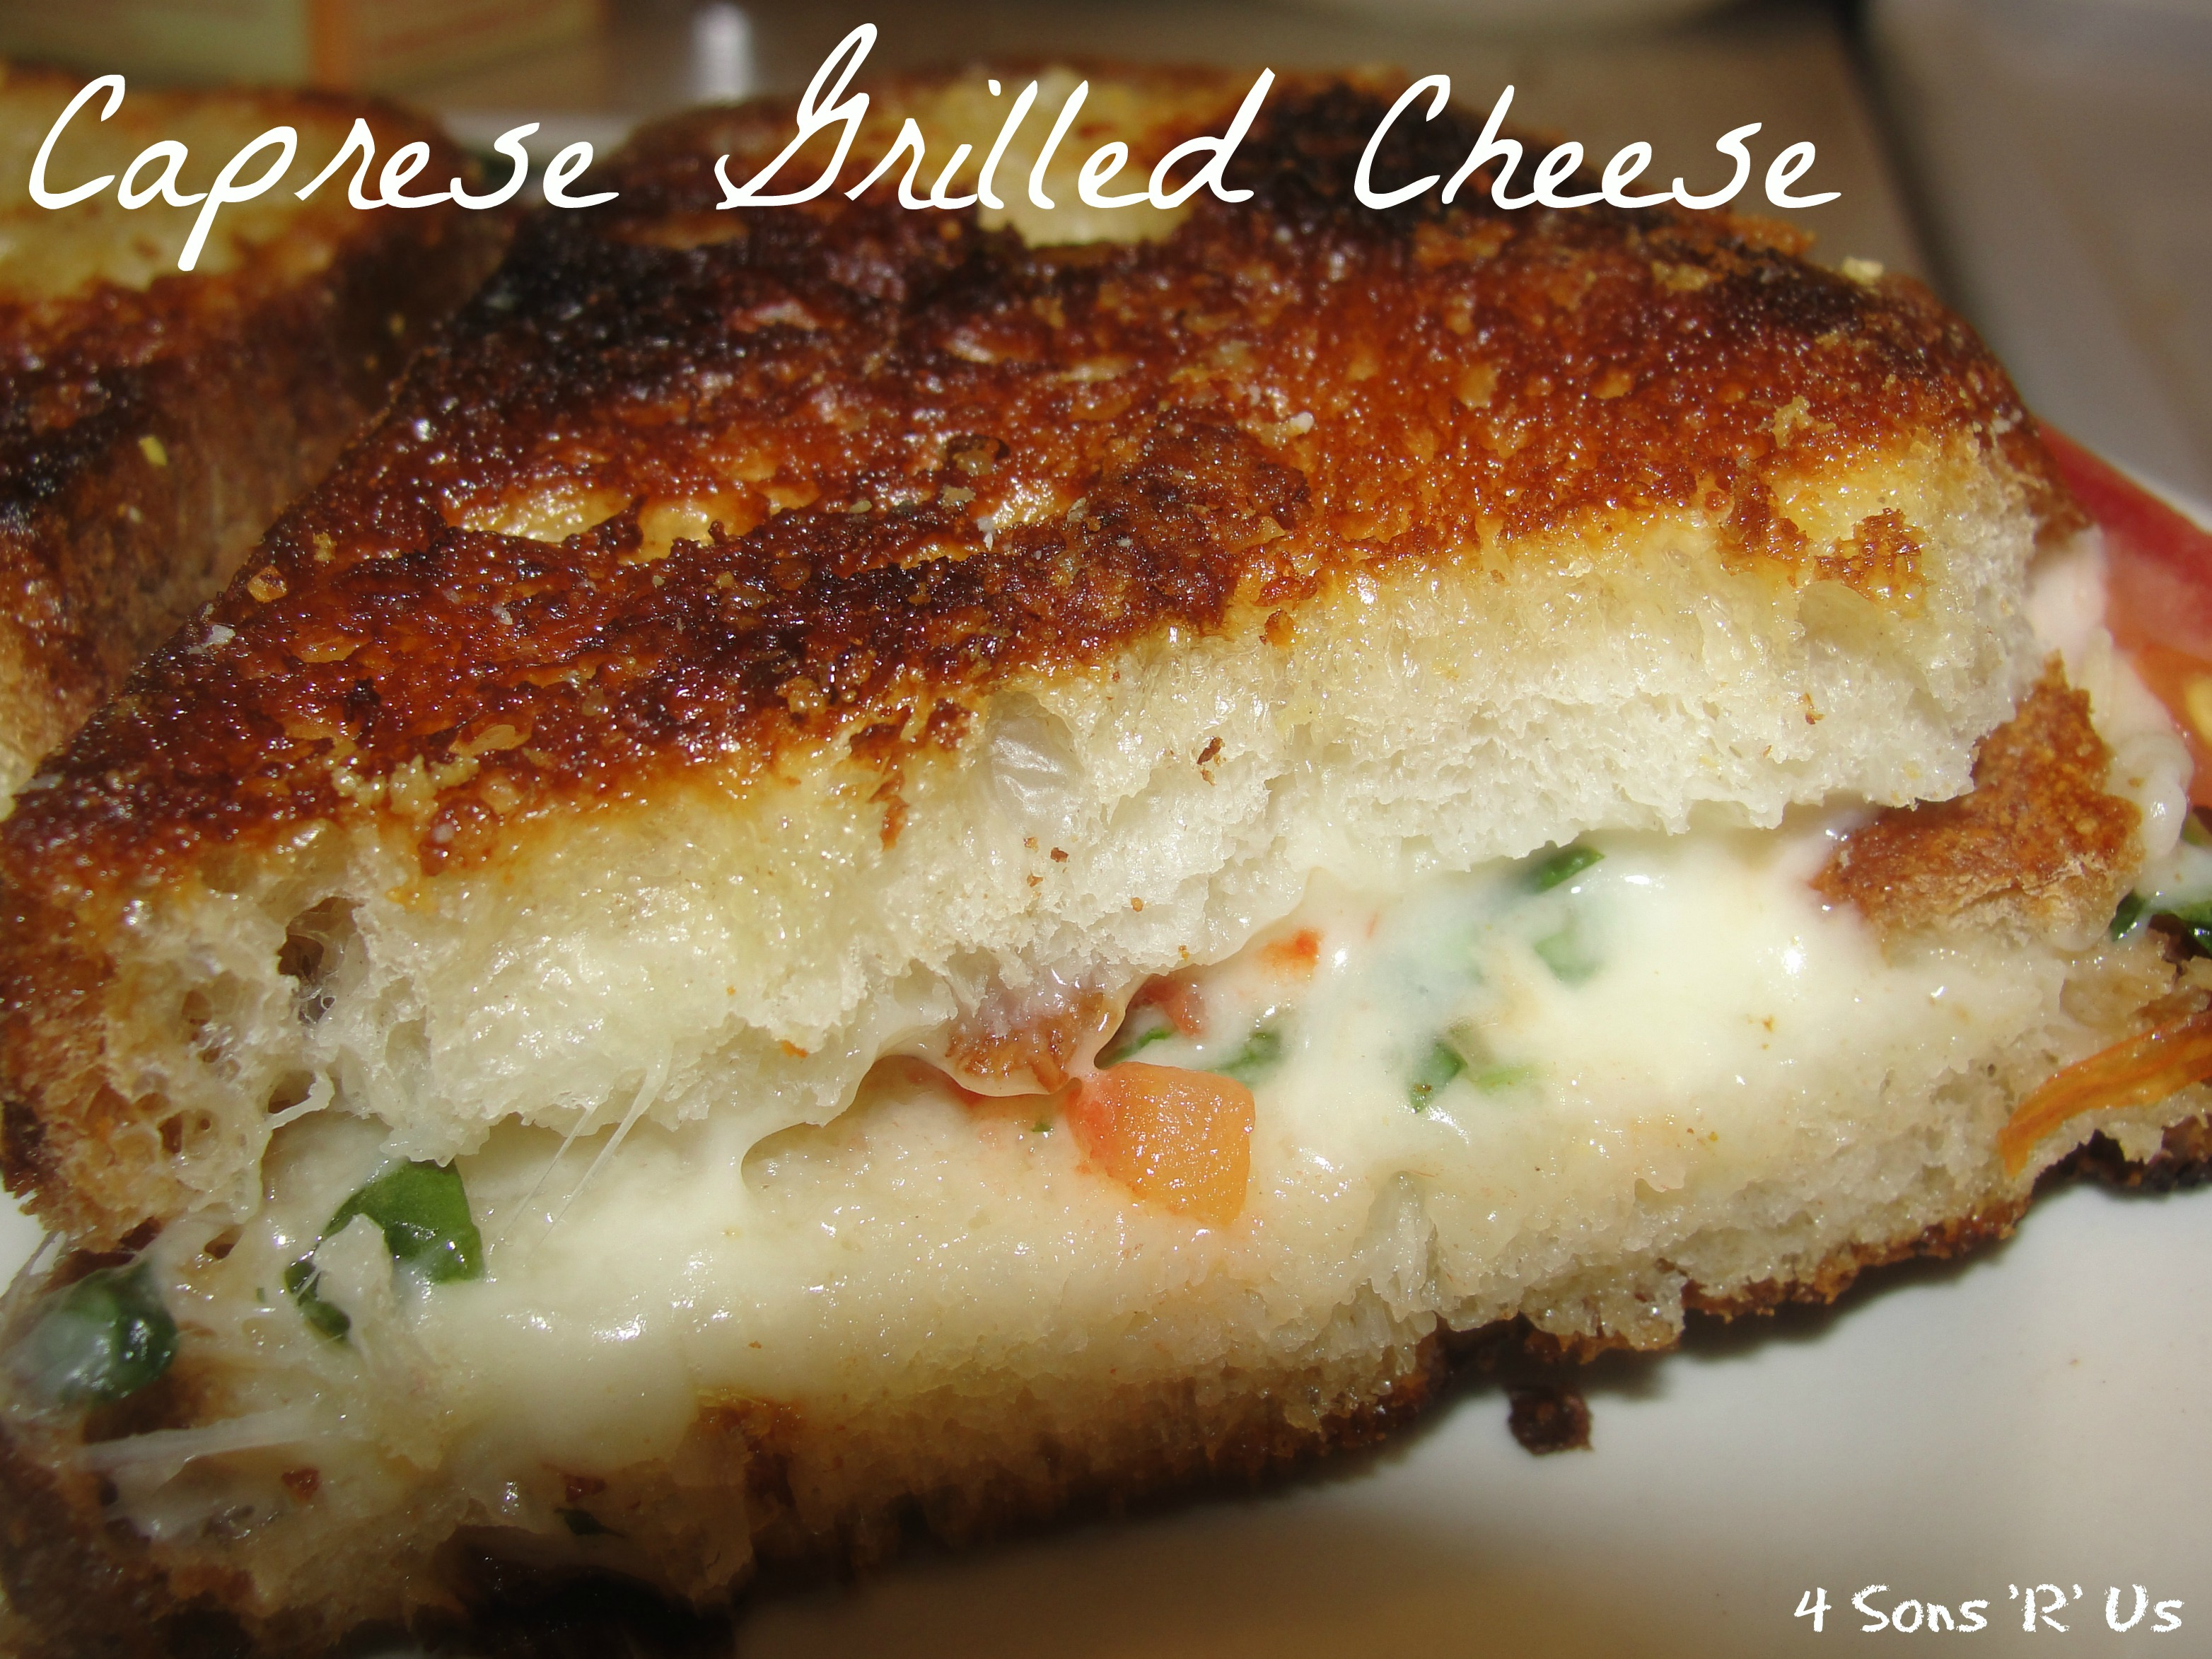 Sons 'R' Us: Caprese Grilled Cheese Sandwich